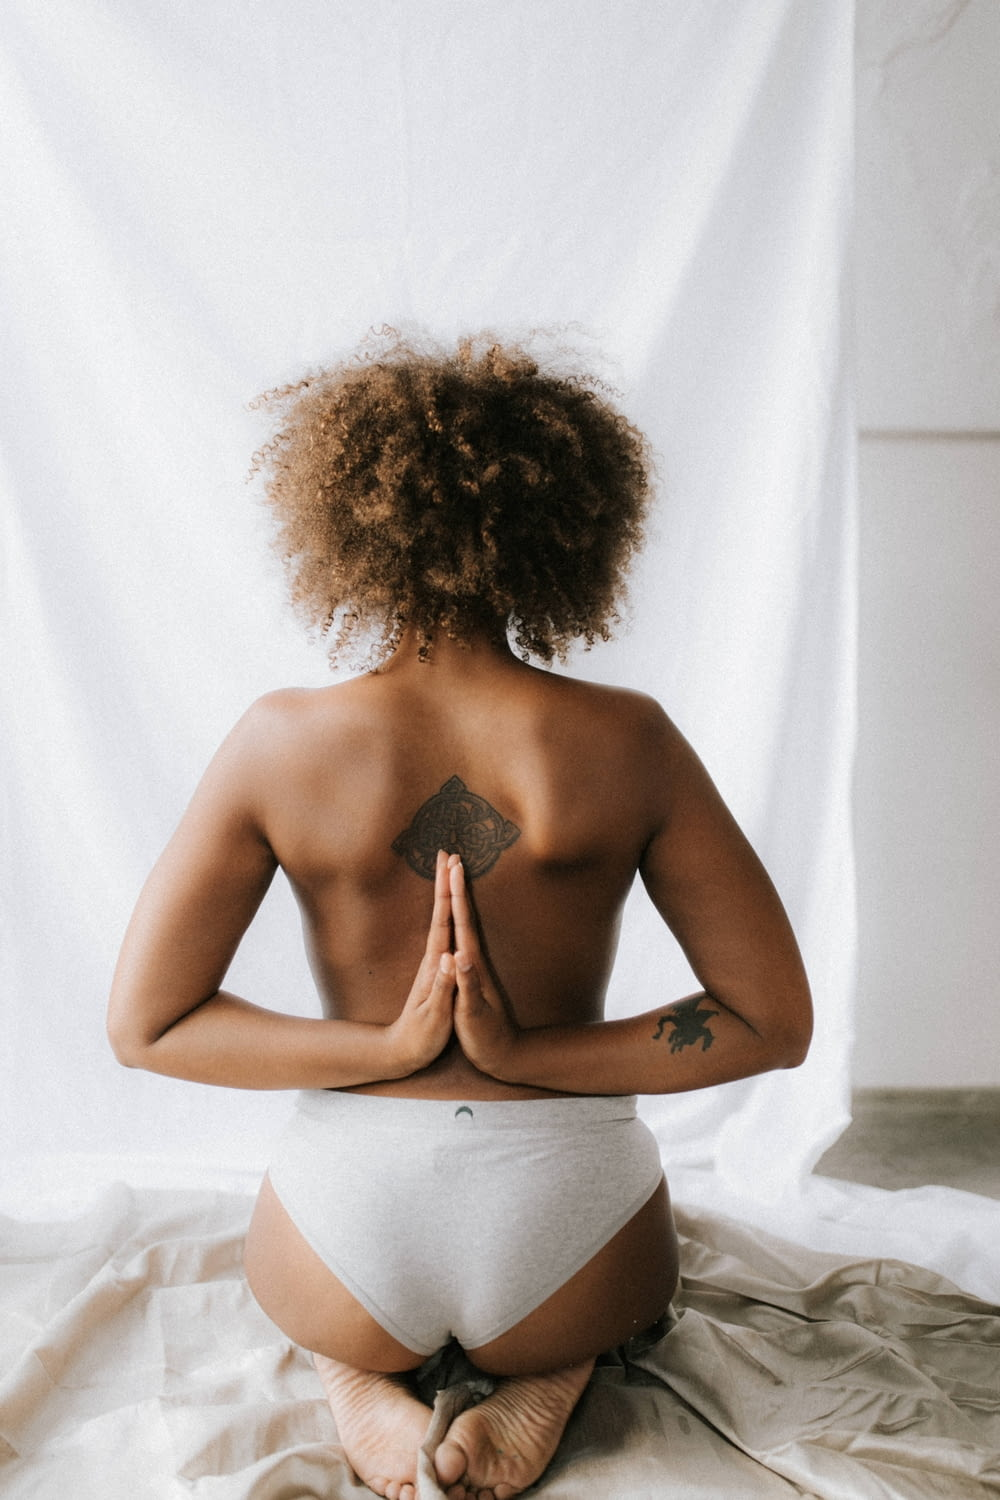 woman kneeling with both hands on her back doing praying gesture